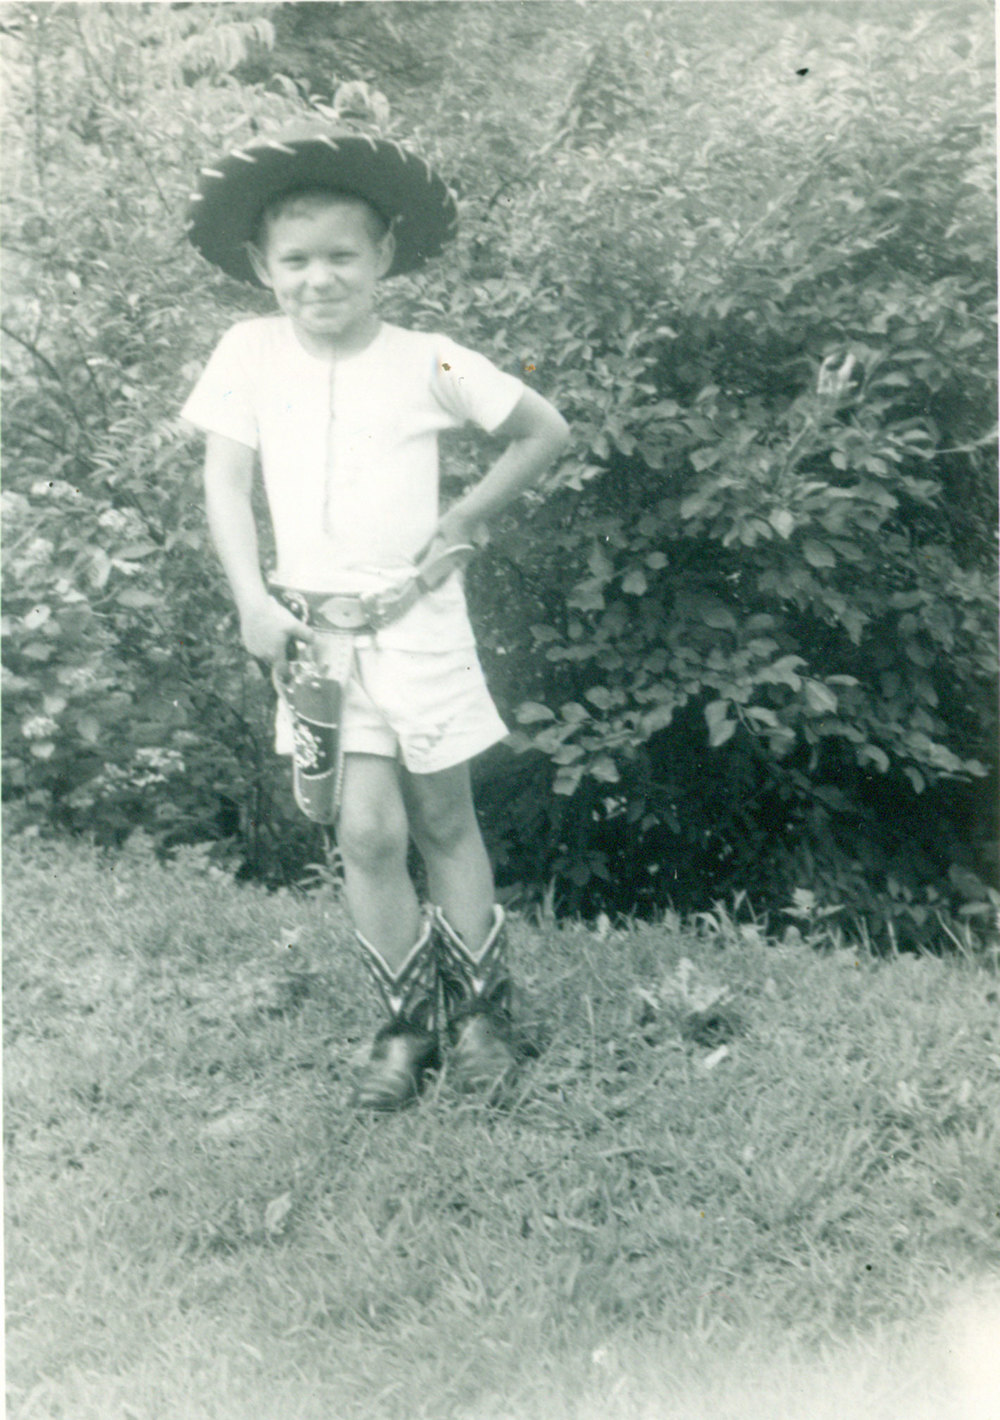 Tom-4th-Bday-1953.jpg